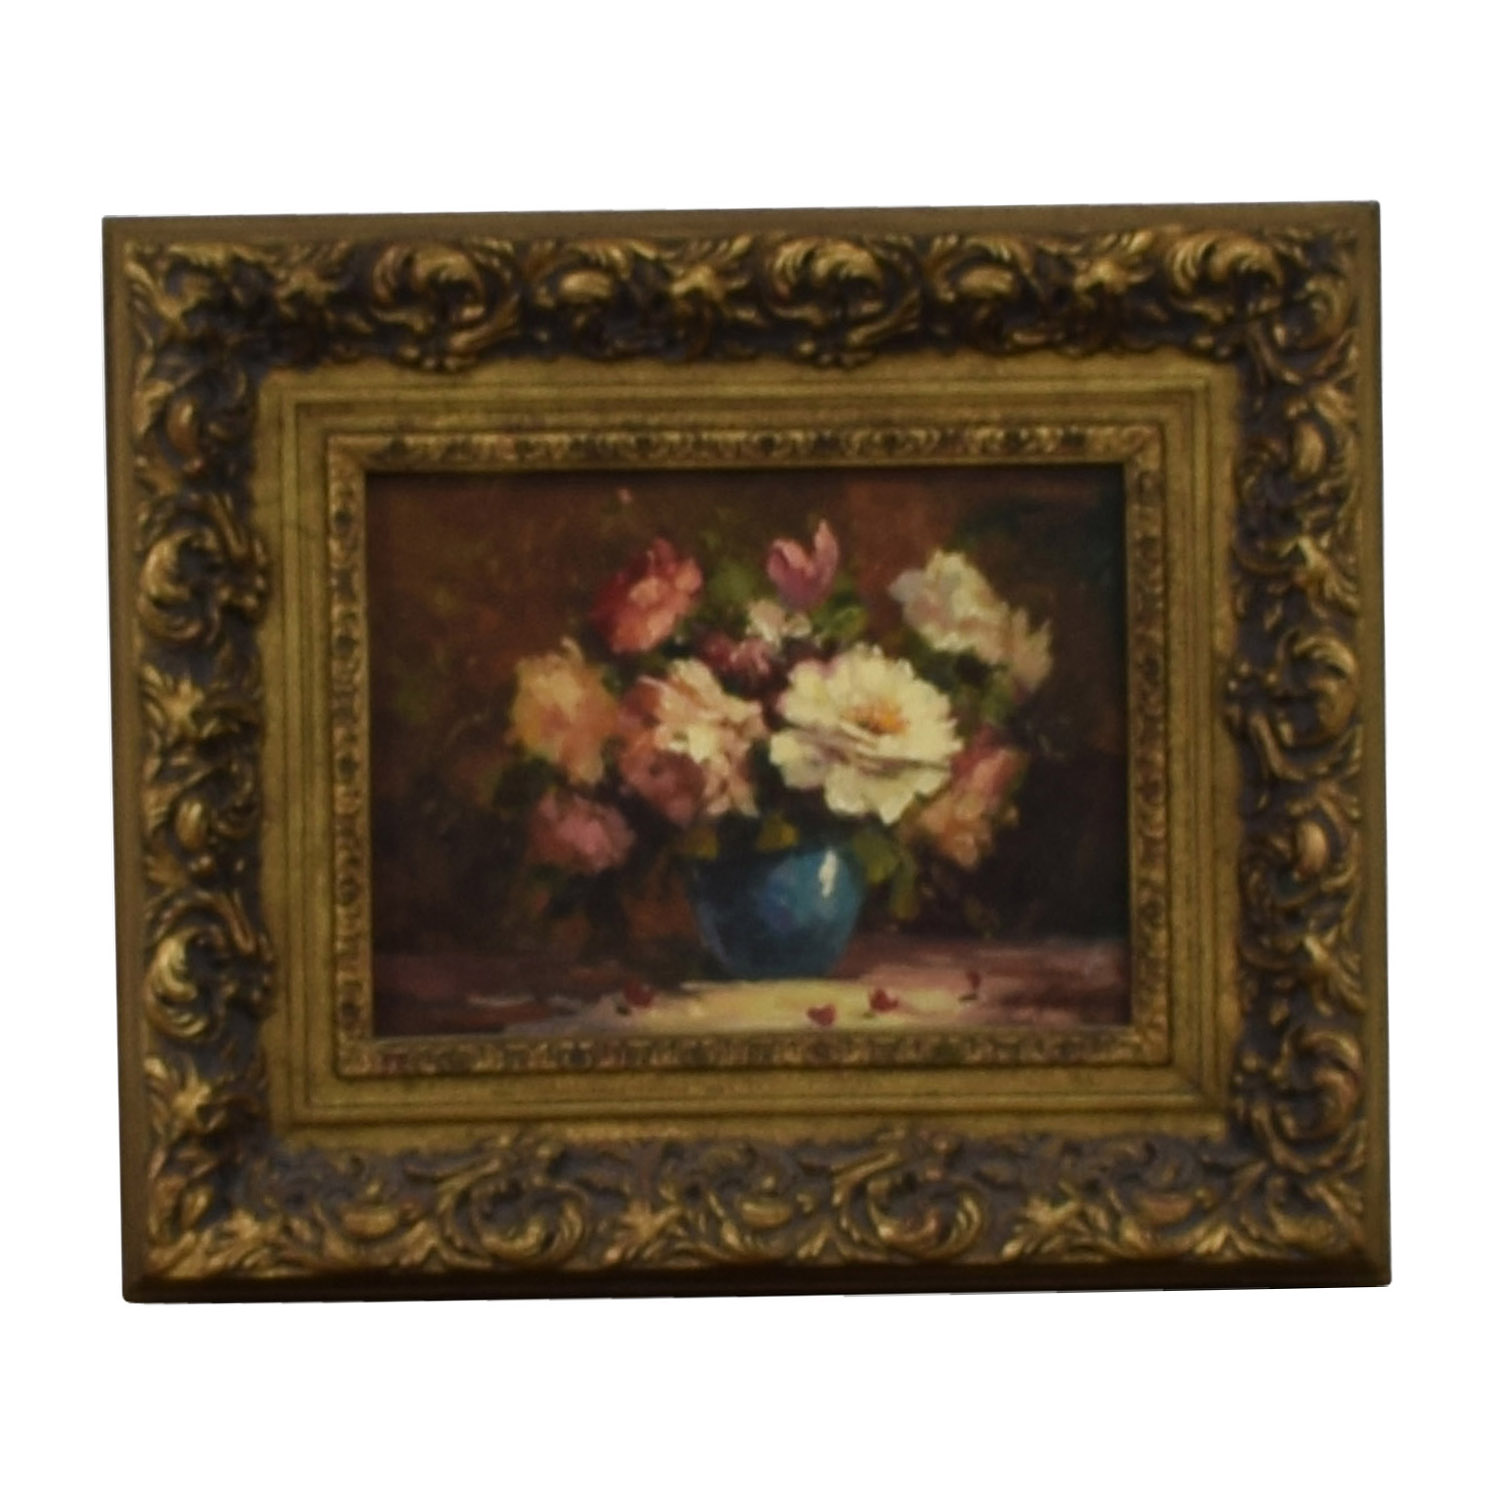 Timeless Treasures Timeless Treasures Signed Floral Framed Oil Painting nyc